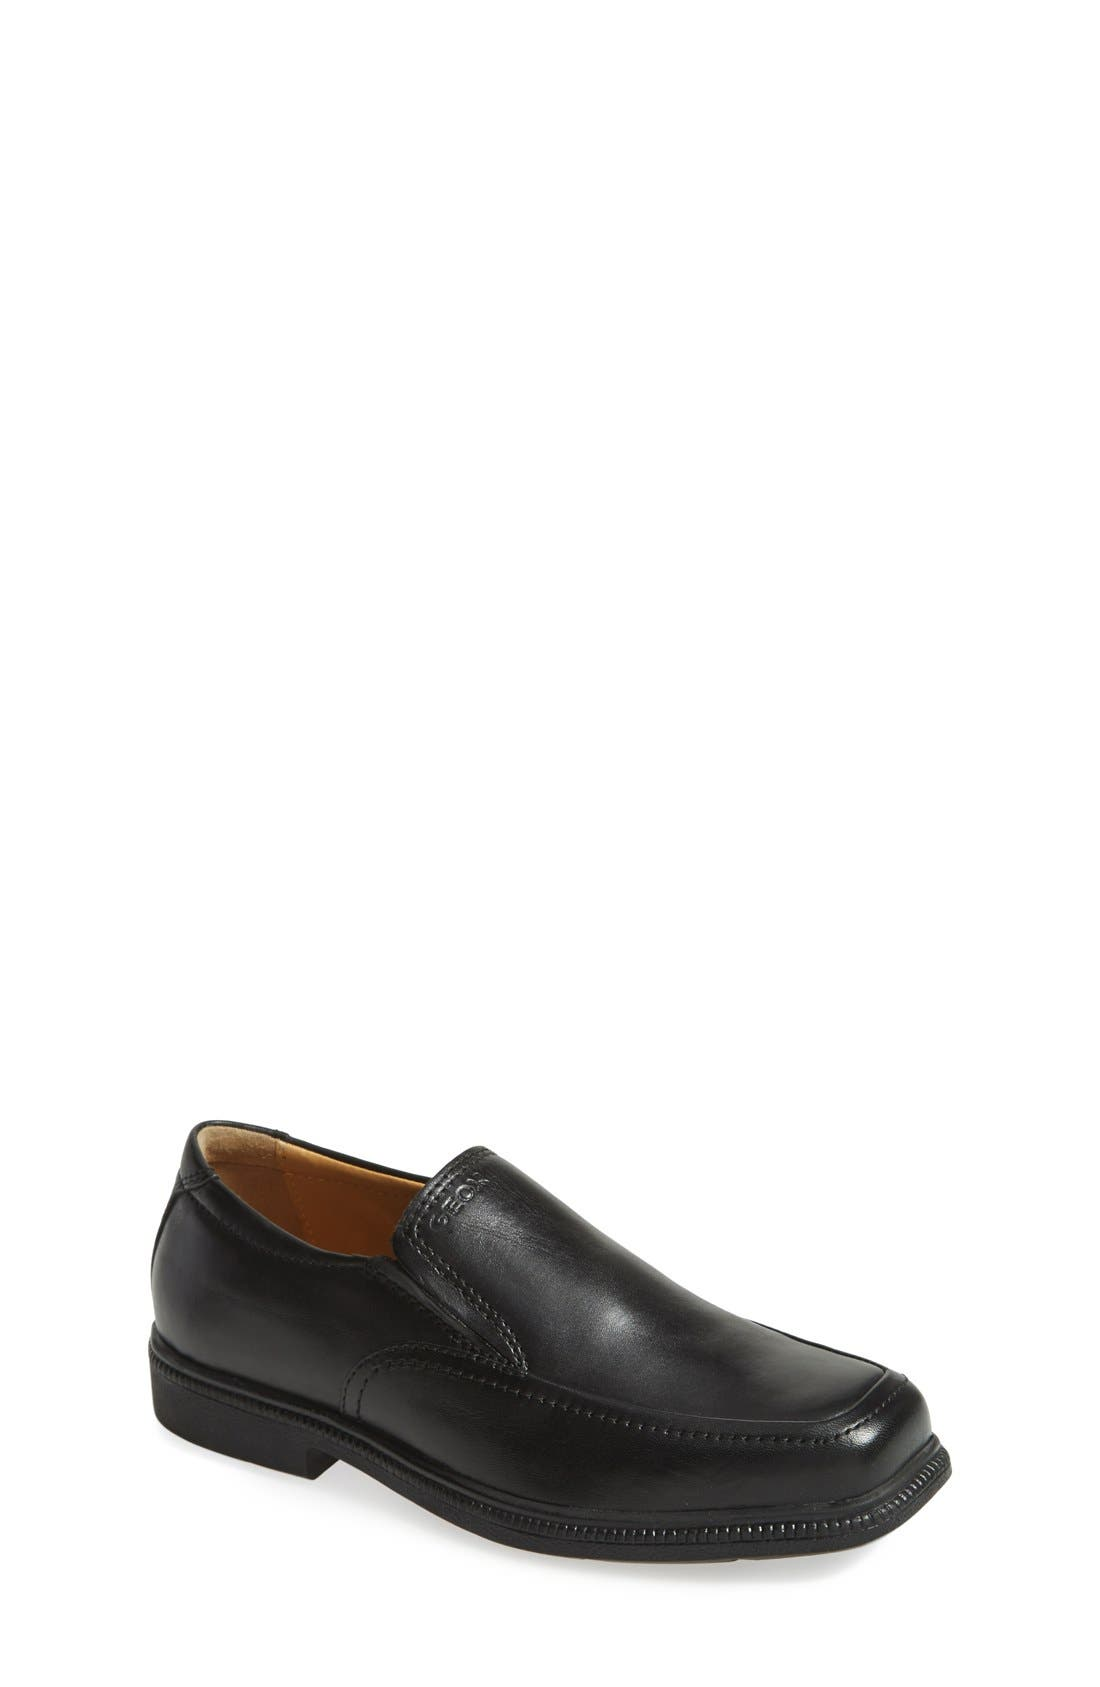 GEOX 'Federico' Loafer, Main, color, BLACK